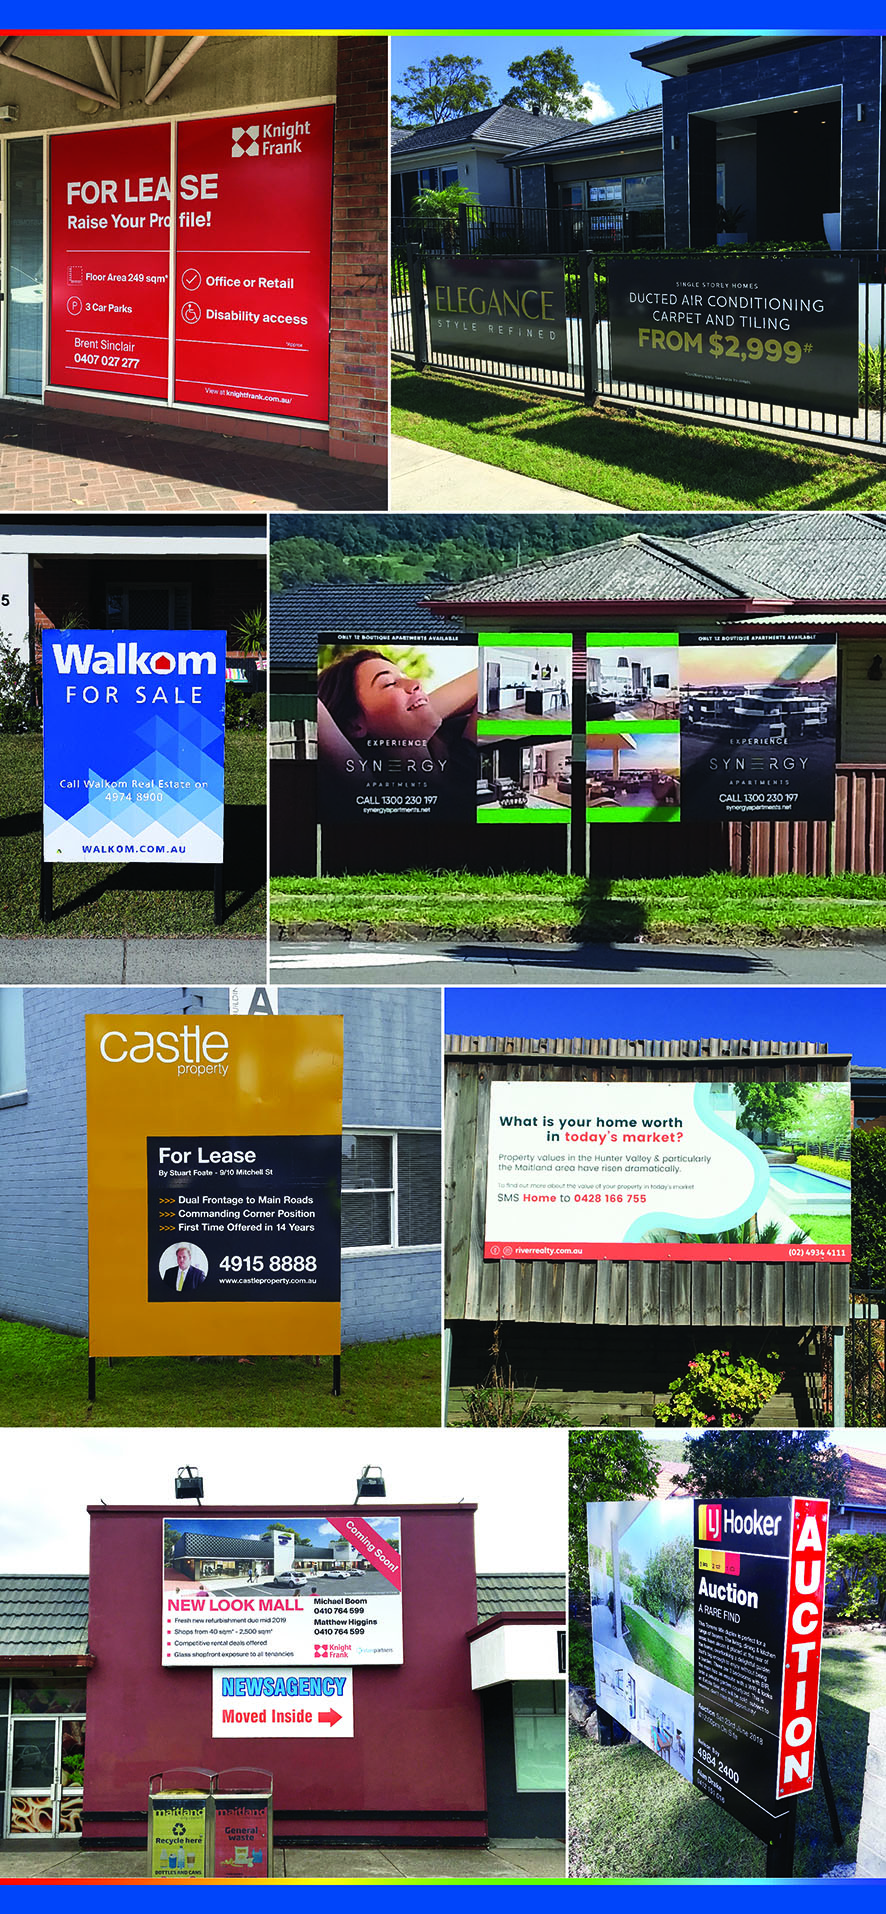 Castle real estate board advertising large installed